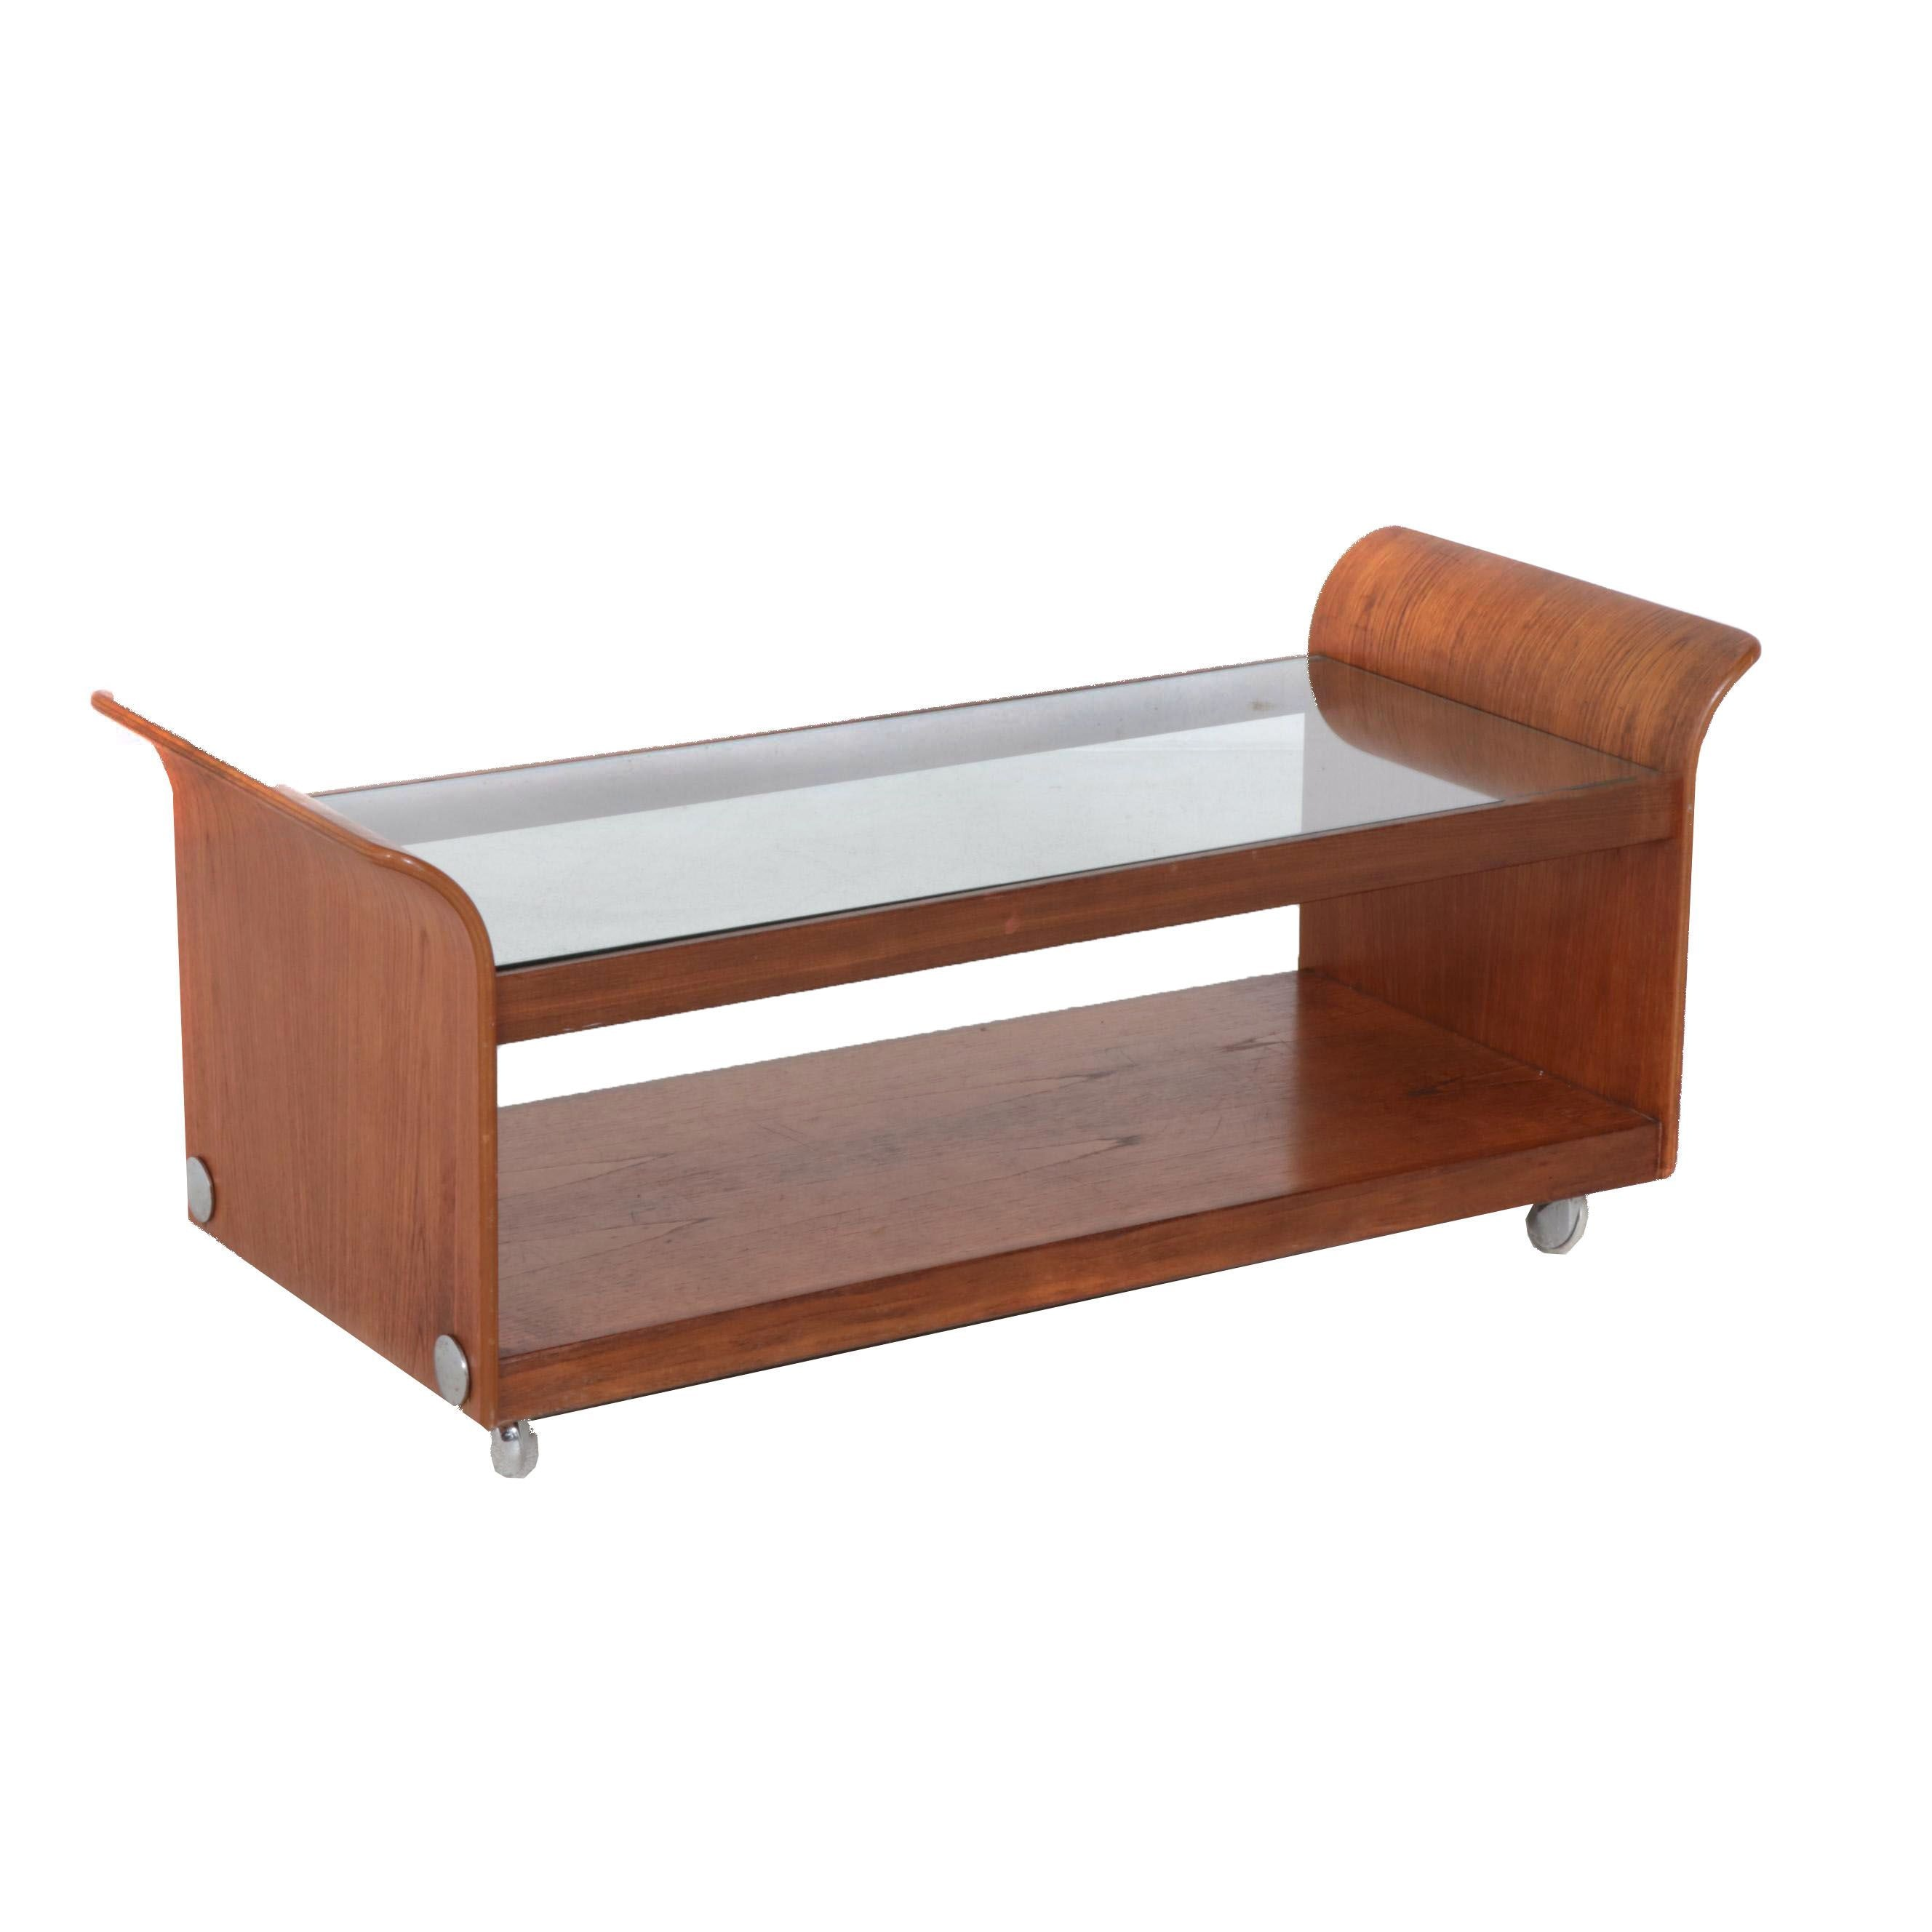 Teak Glass Top Formed Wood Glass Top Coffee Table, Mid Century